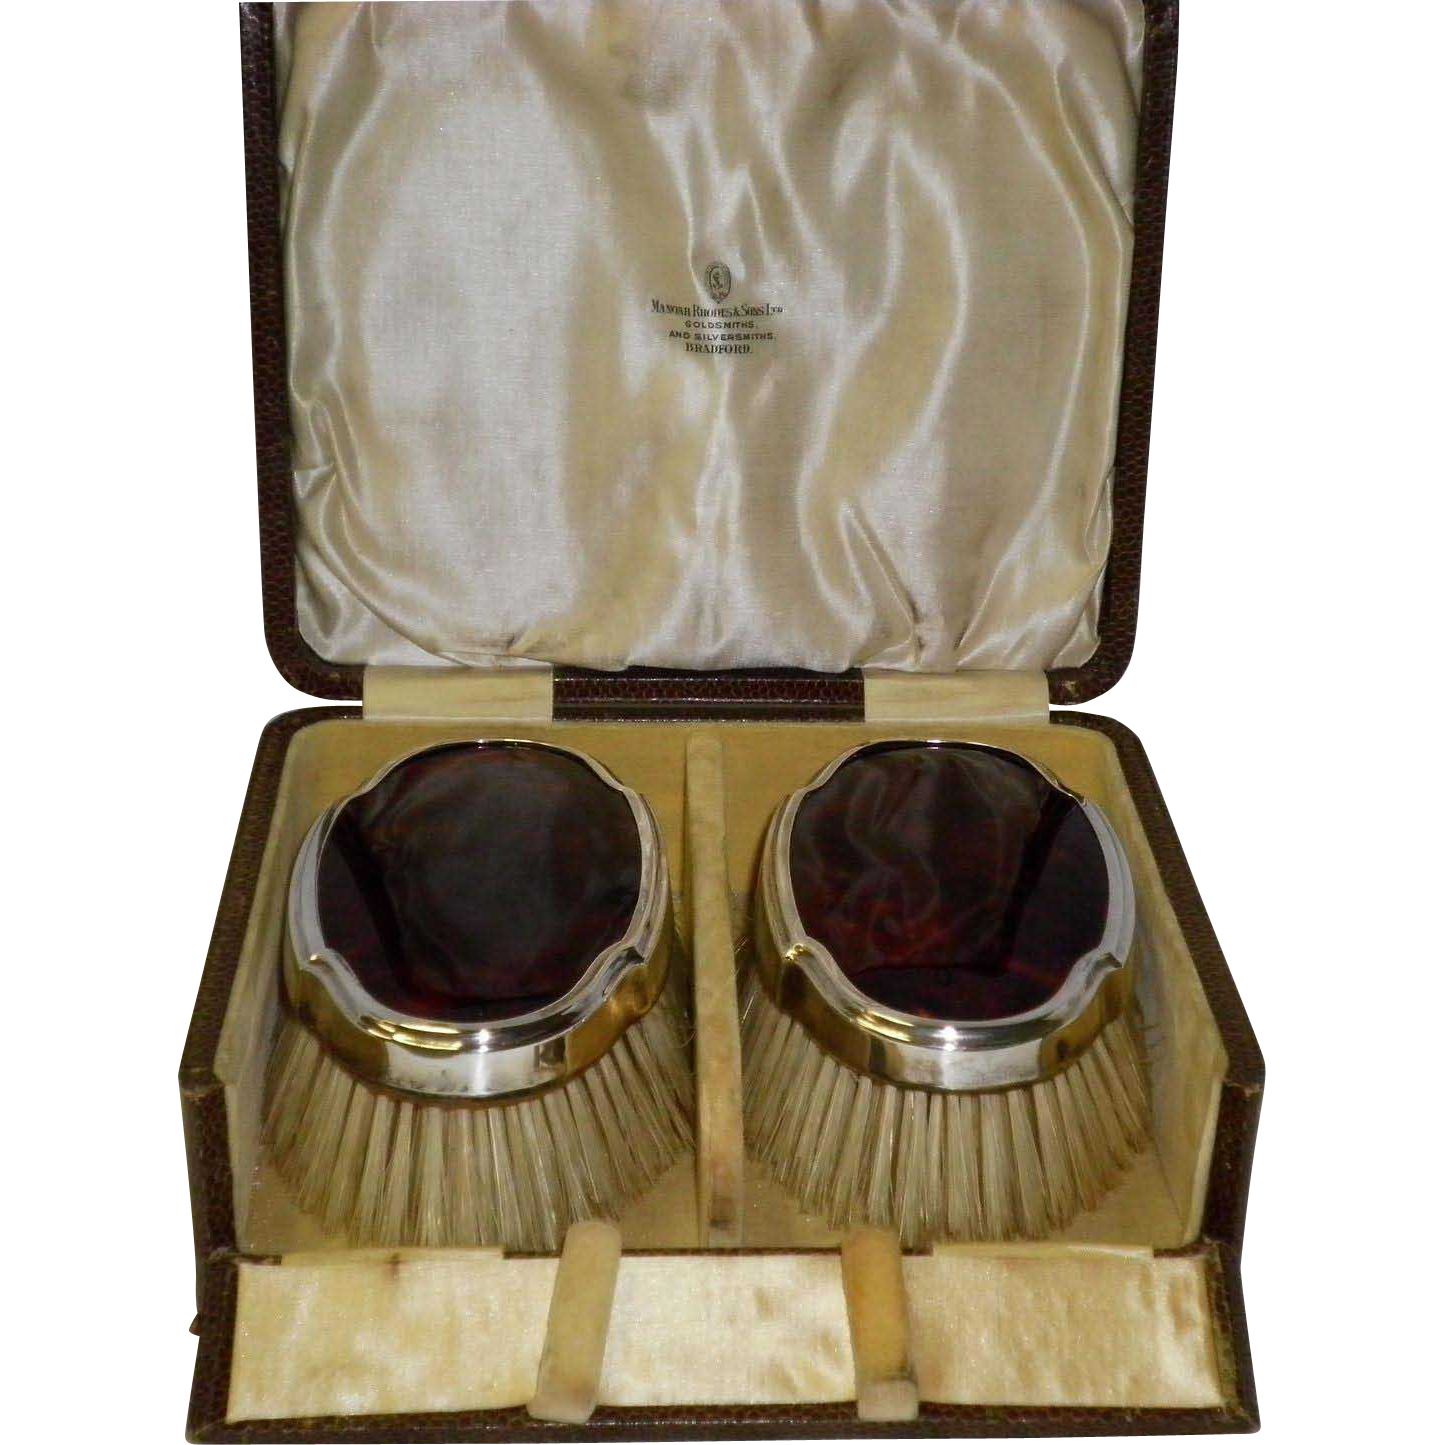 Antique Sterling Silver & Tortoiseshell Clothes Brushes In Original Case By Manoah Rhodes & Sons LTD